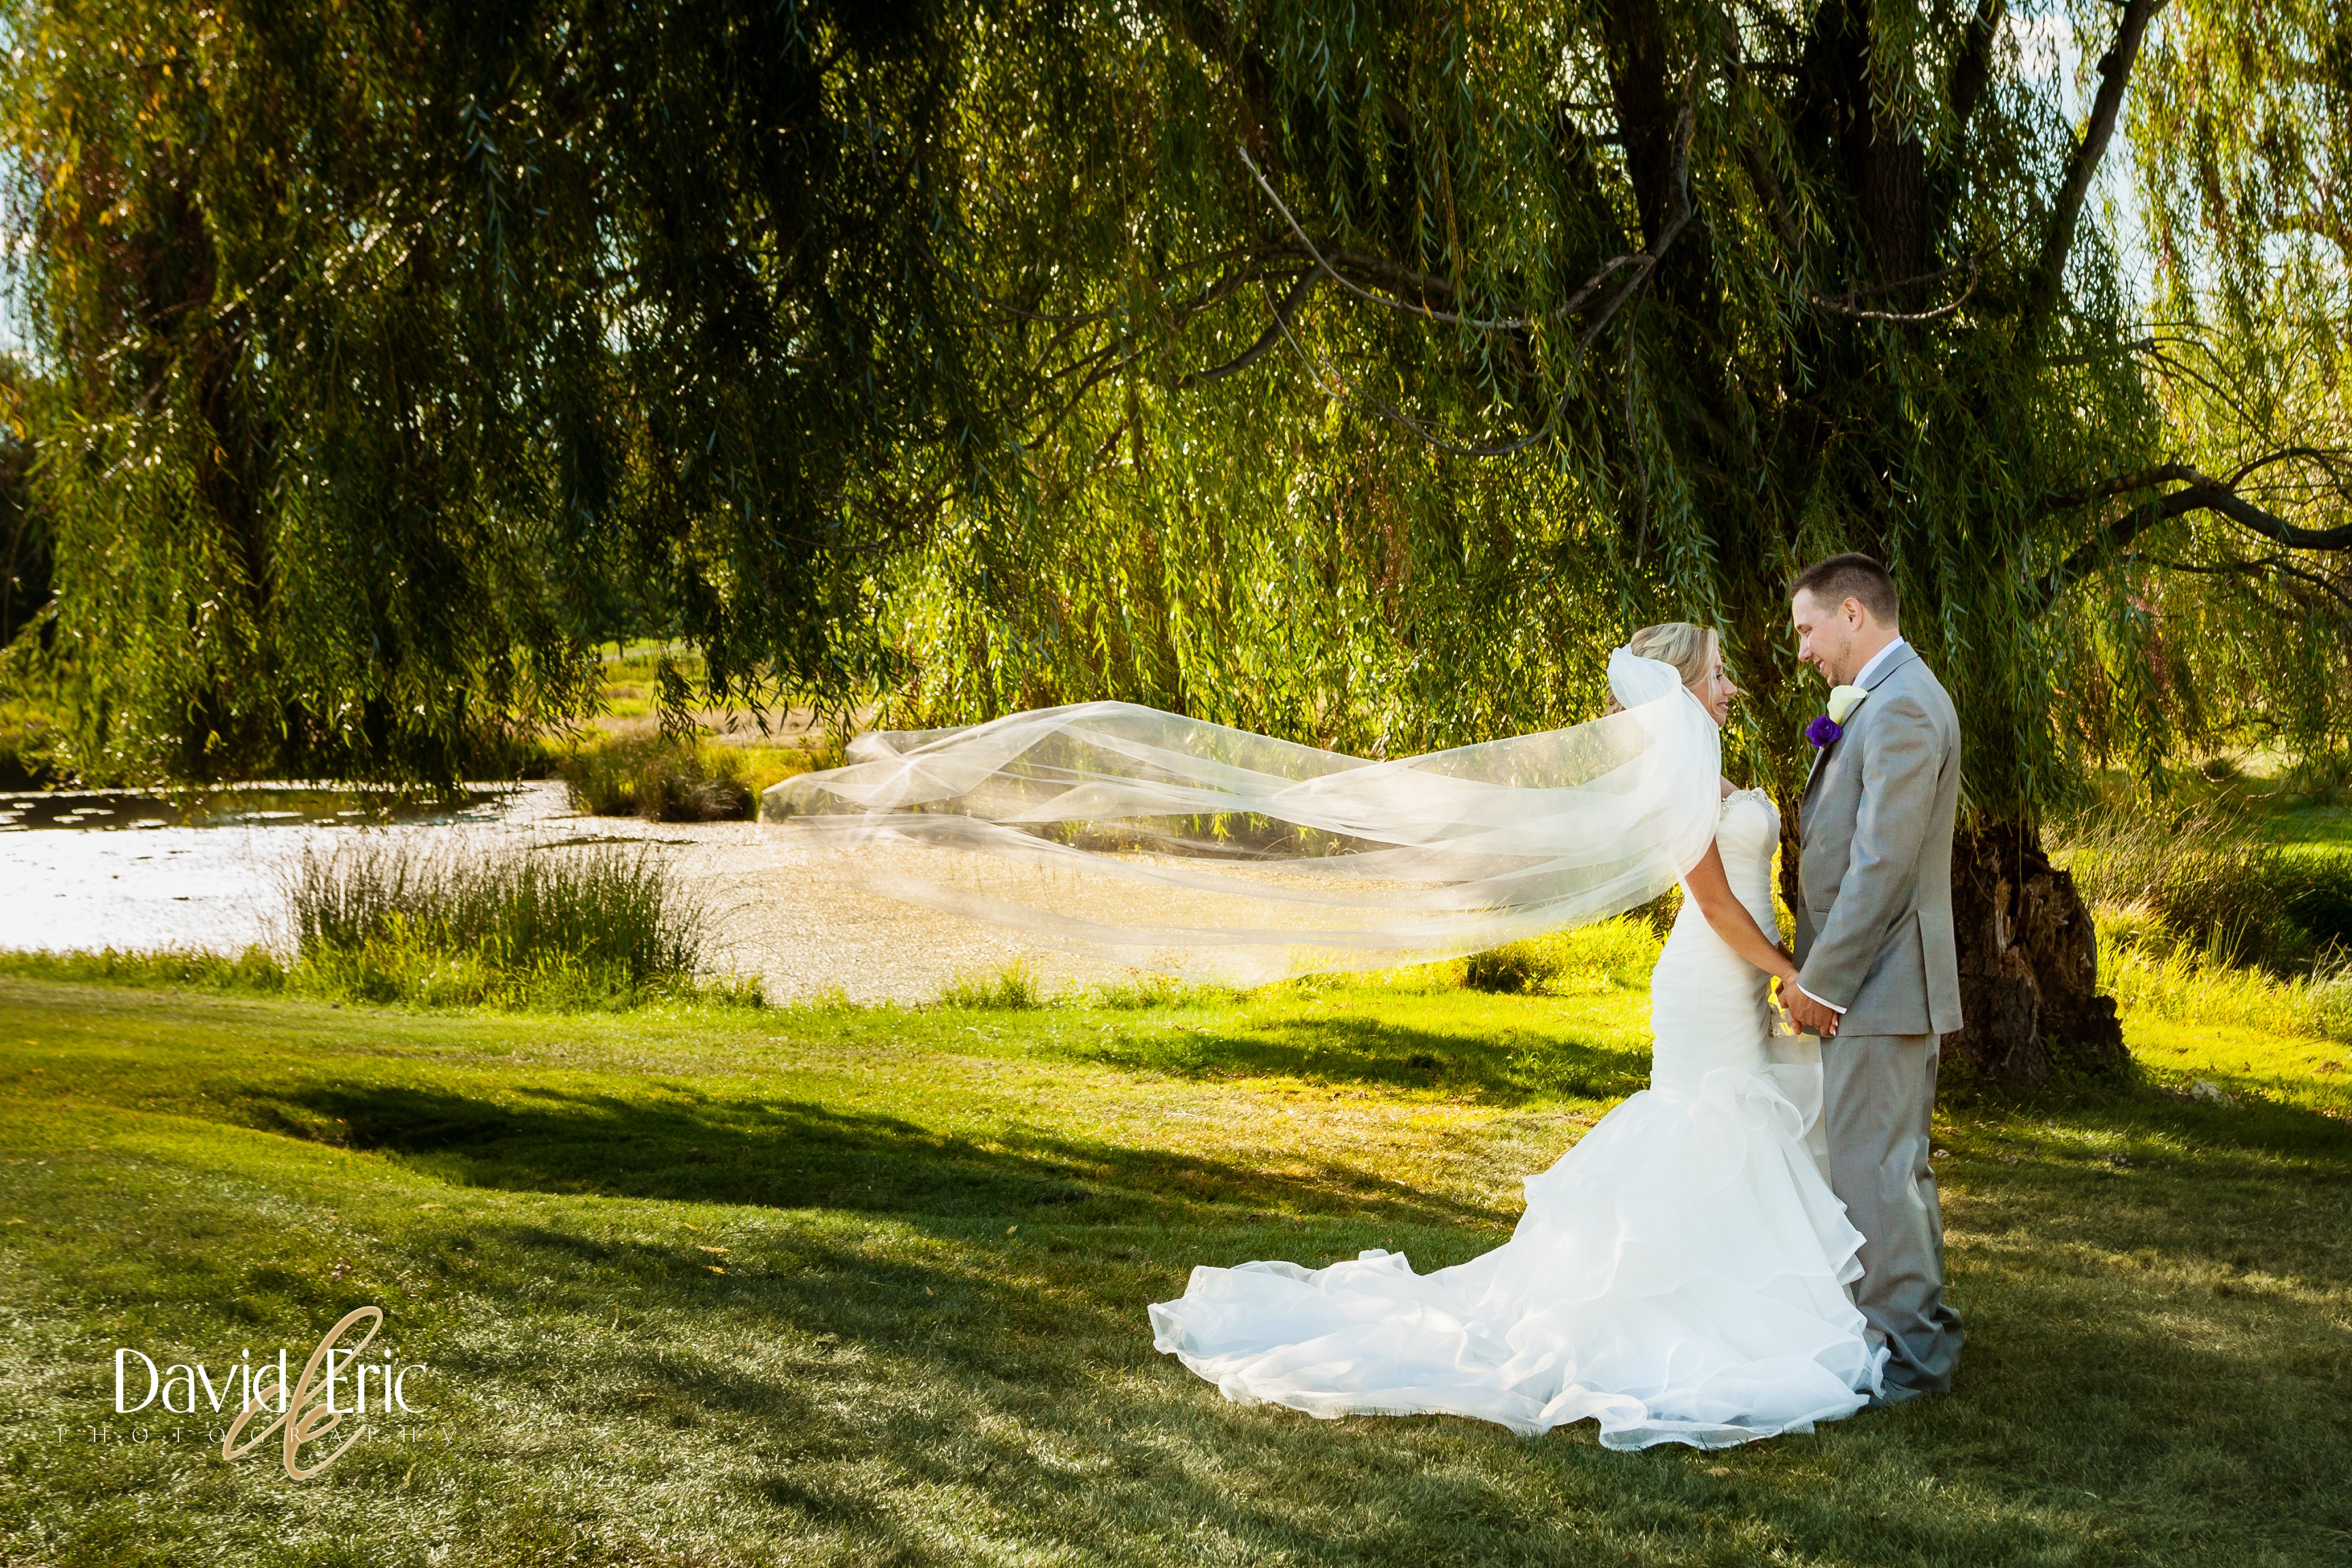 Galloping Hill Golf Course Wedding in Kenilworth, NJ | David Eric Studio of Photography